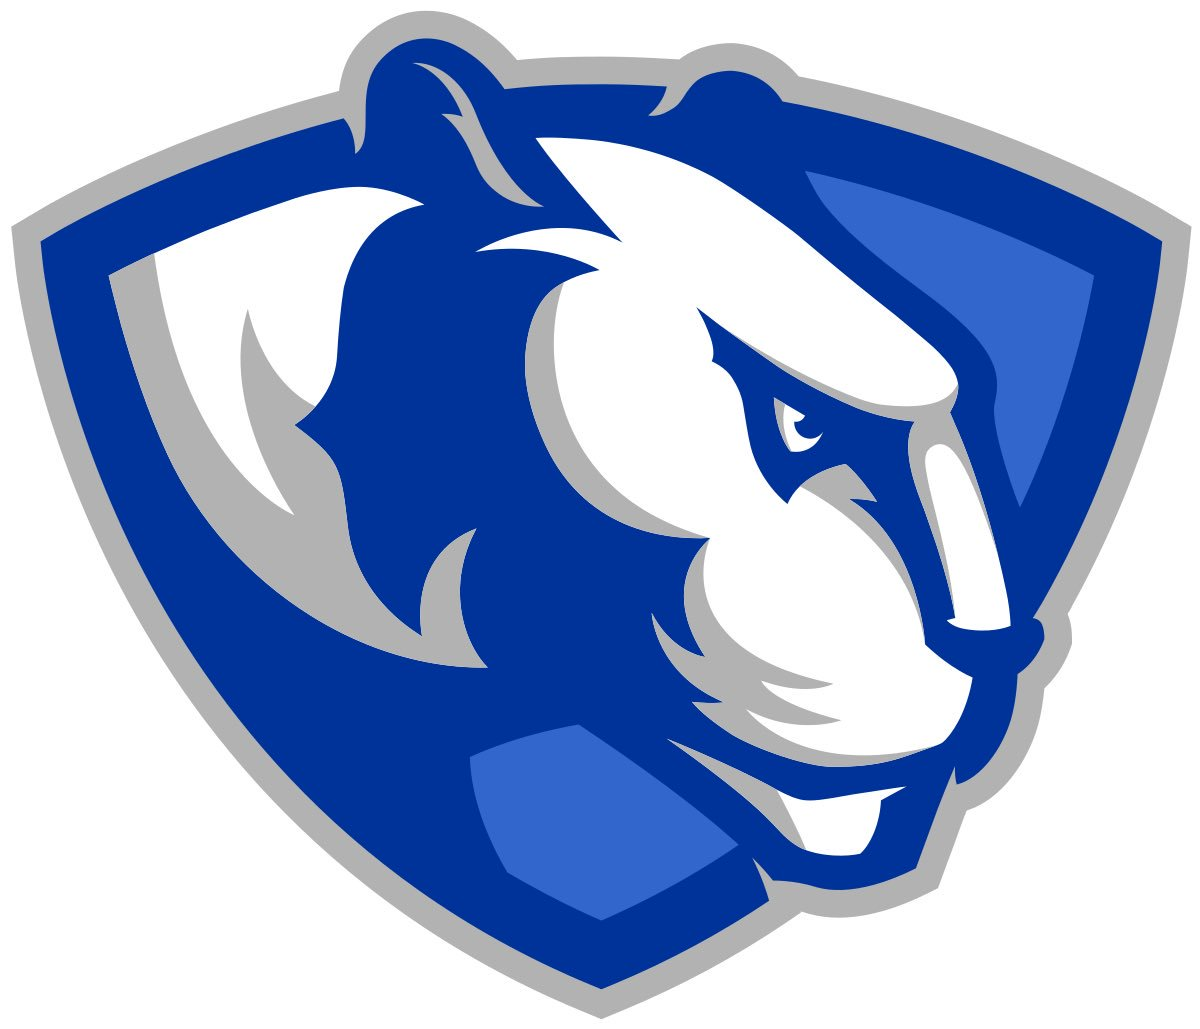 After a very impressive visit, I am truly blessed to receive my first Division one offer from Eastern Illinois. I would like to  thank @CoachCushing and @coachGristick for having me on campus.